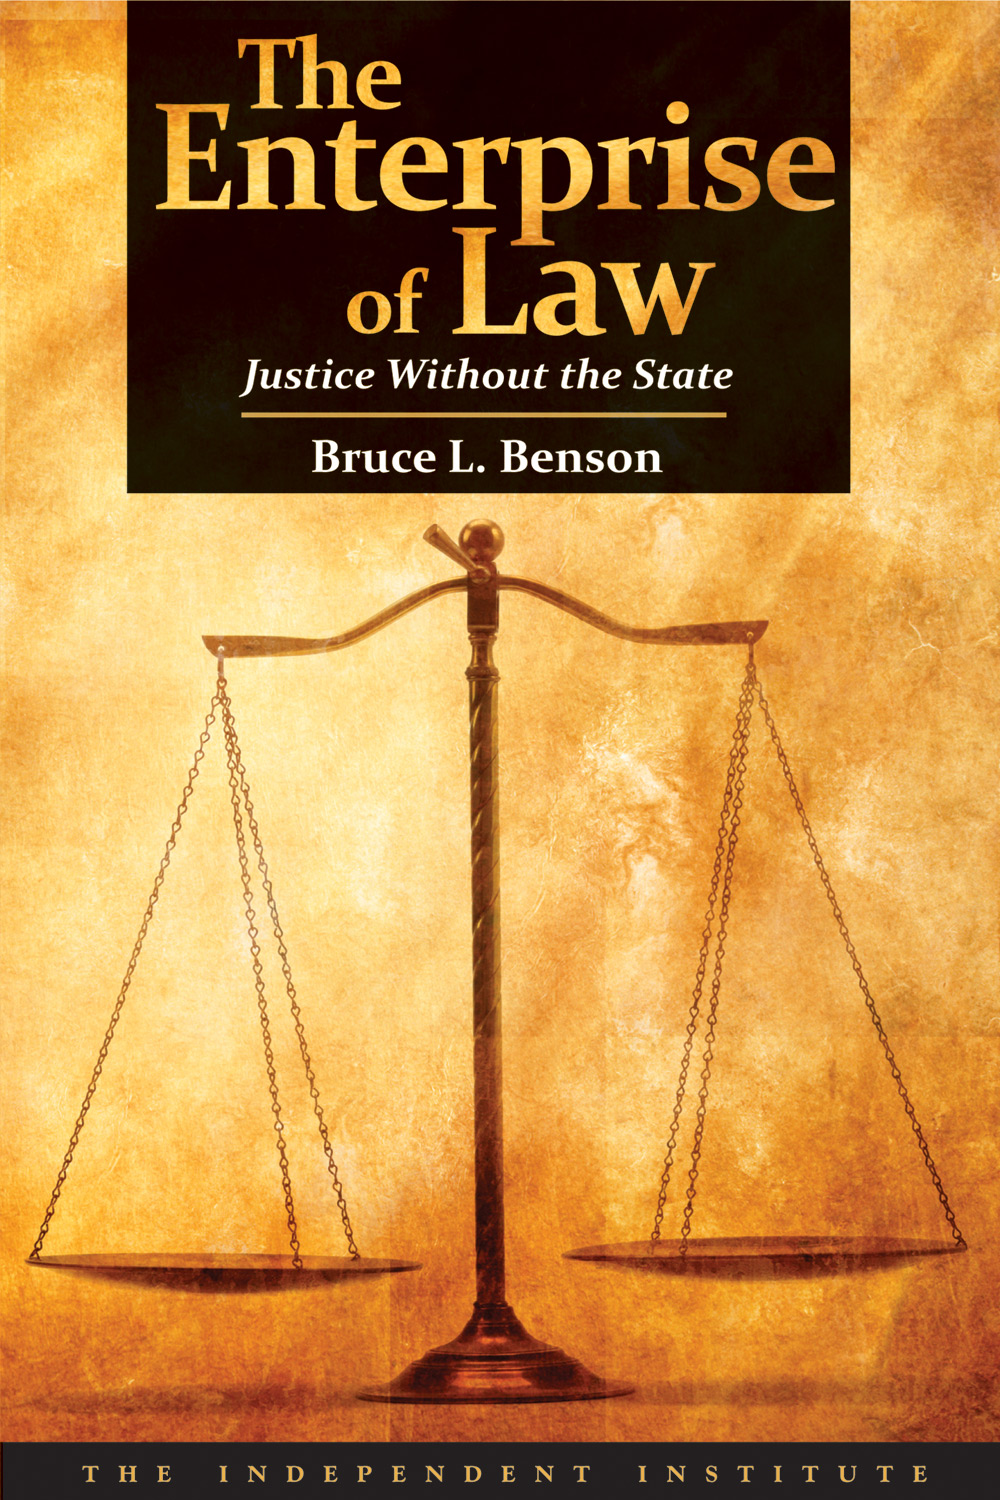 the enterprise of law justice out the state high resolution cover